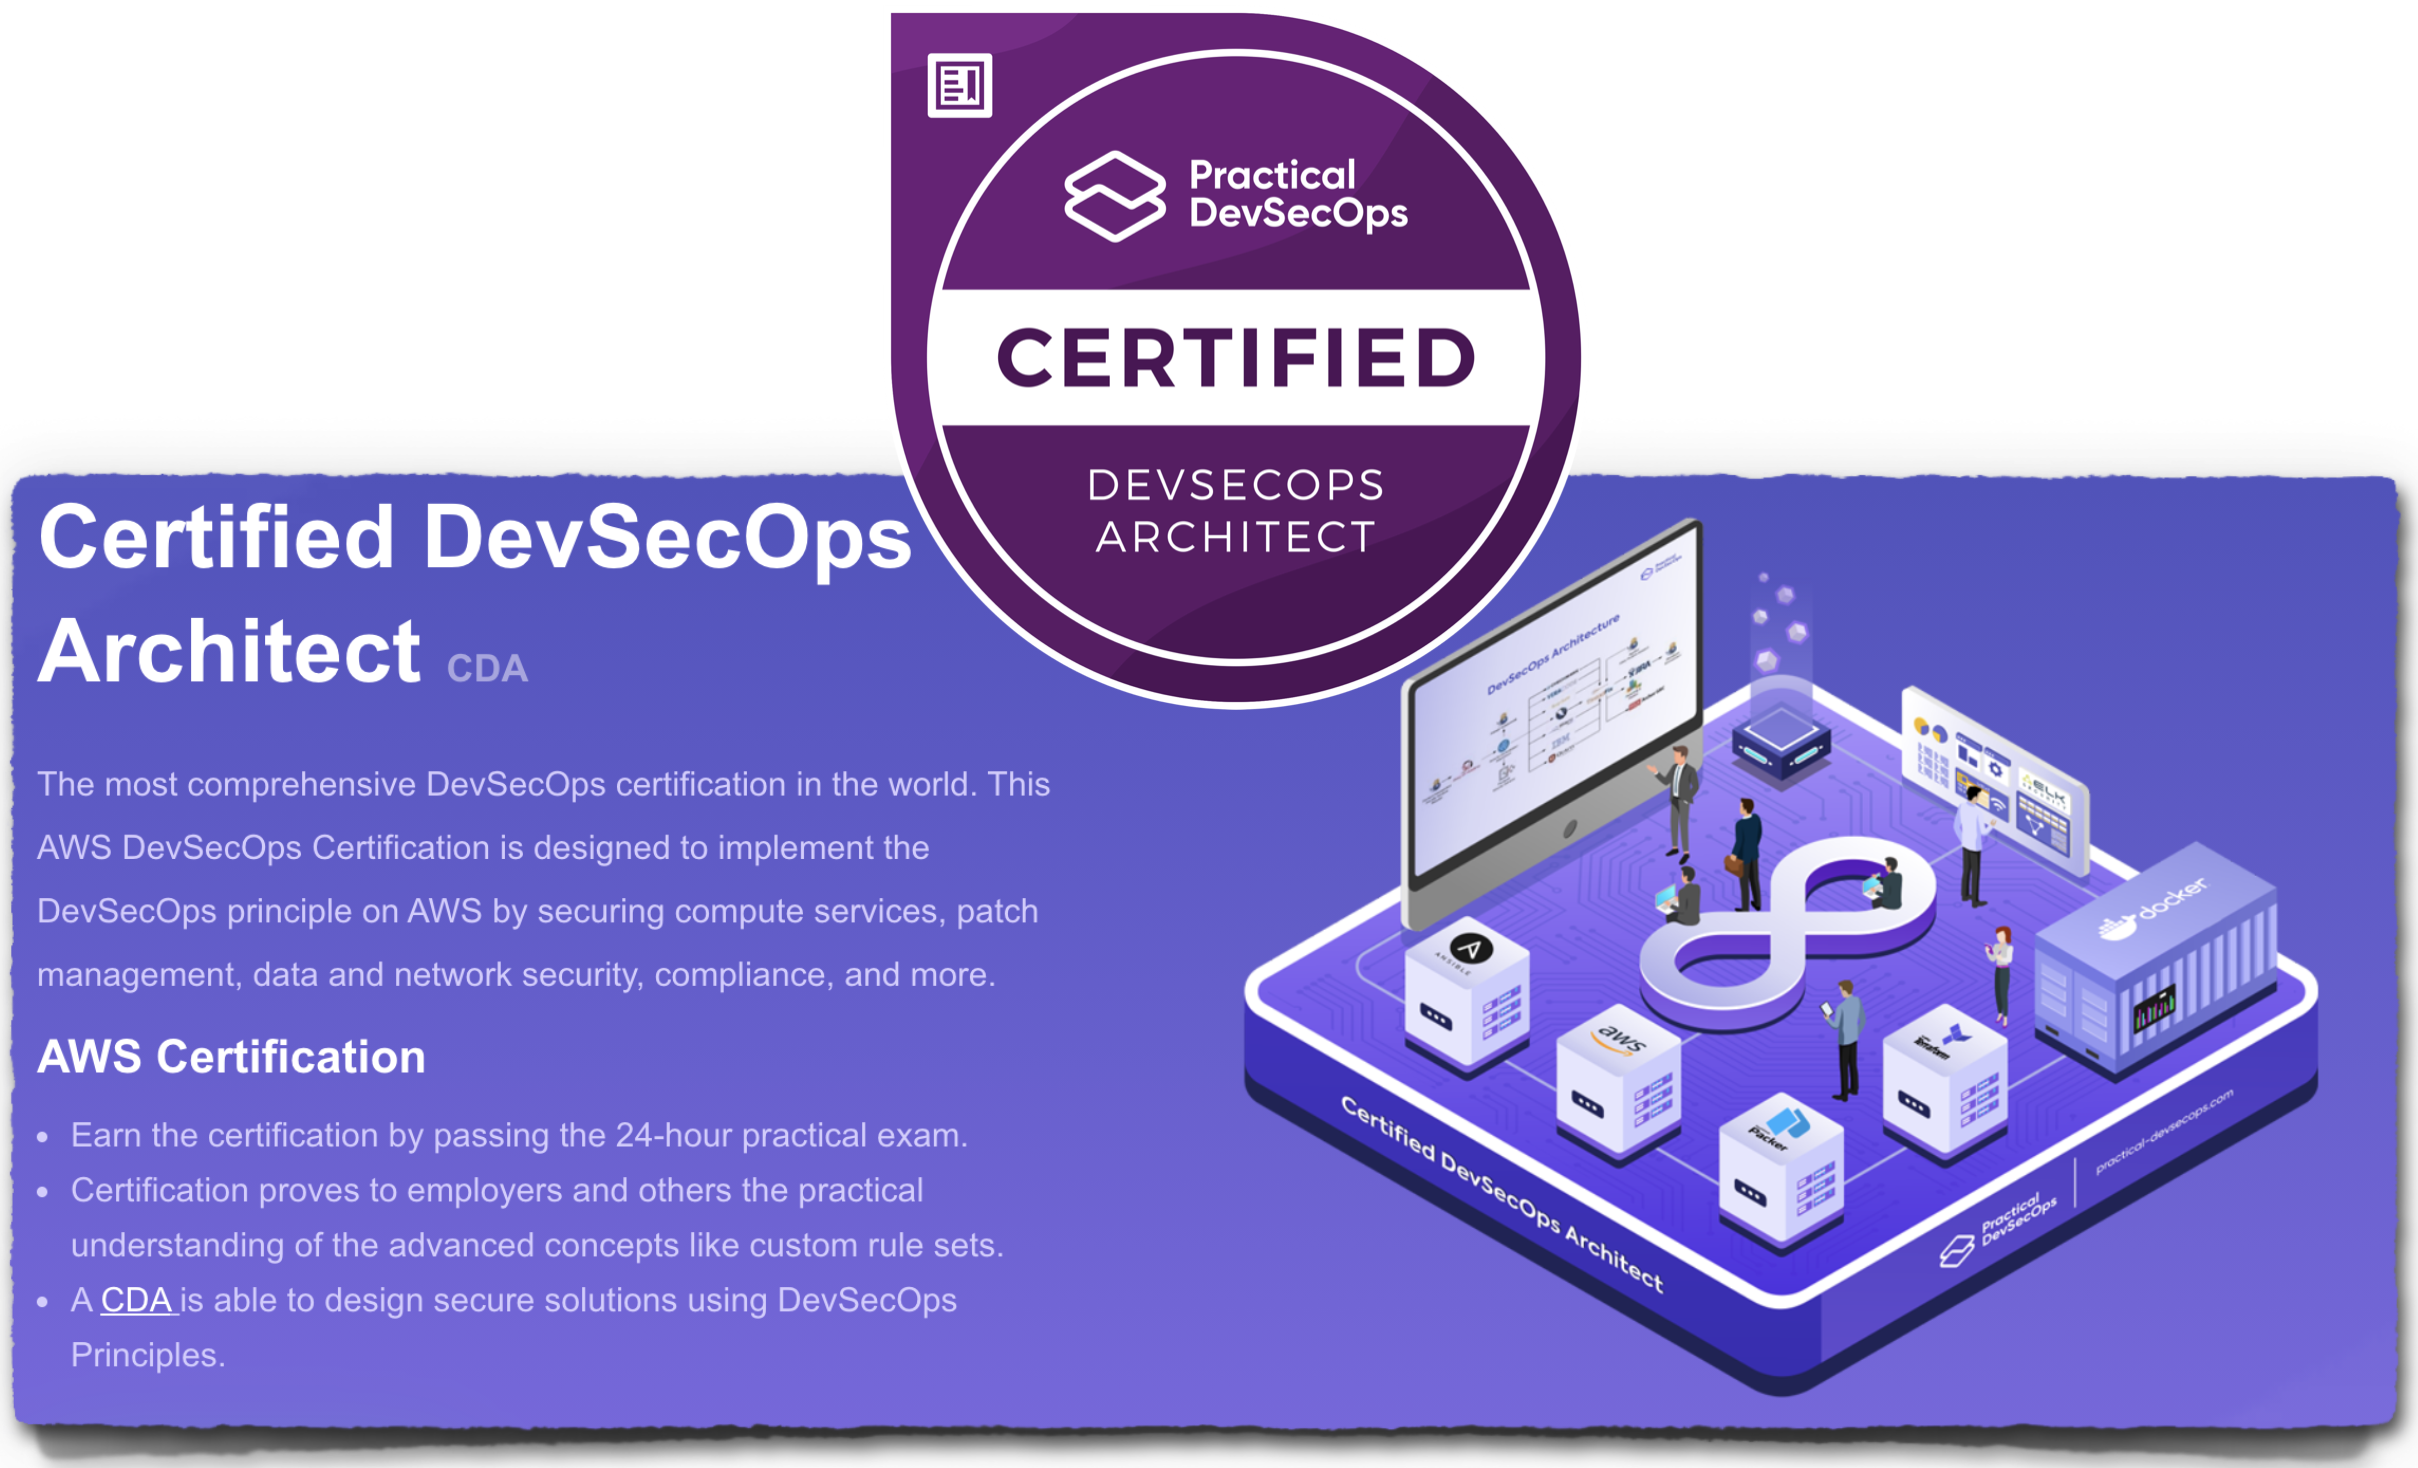 CDA certified DevSecOps Architect in AWS